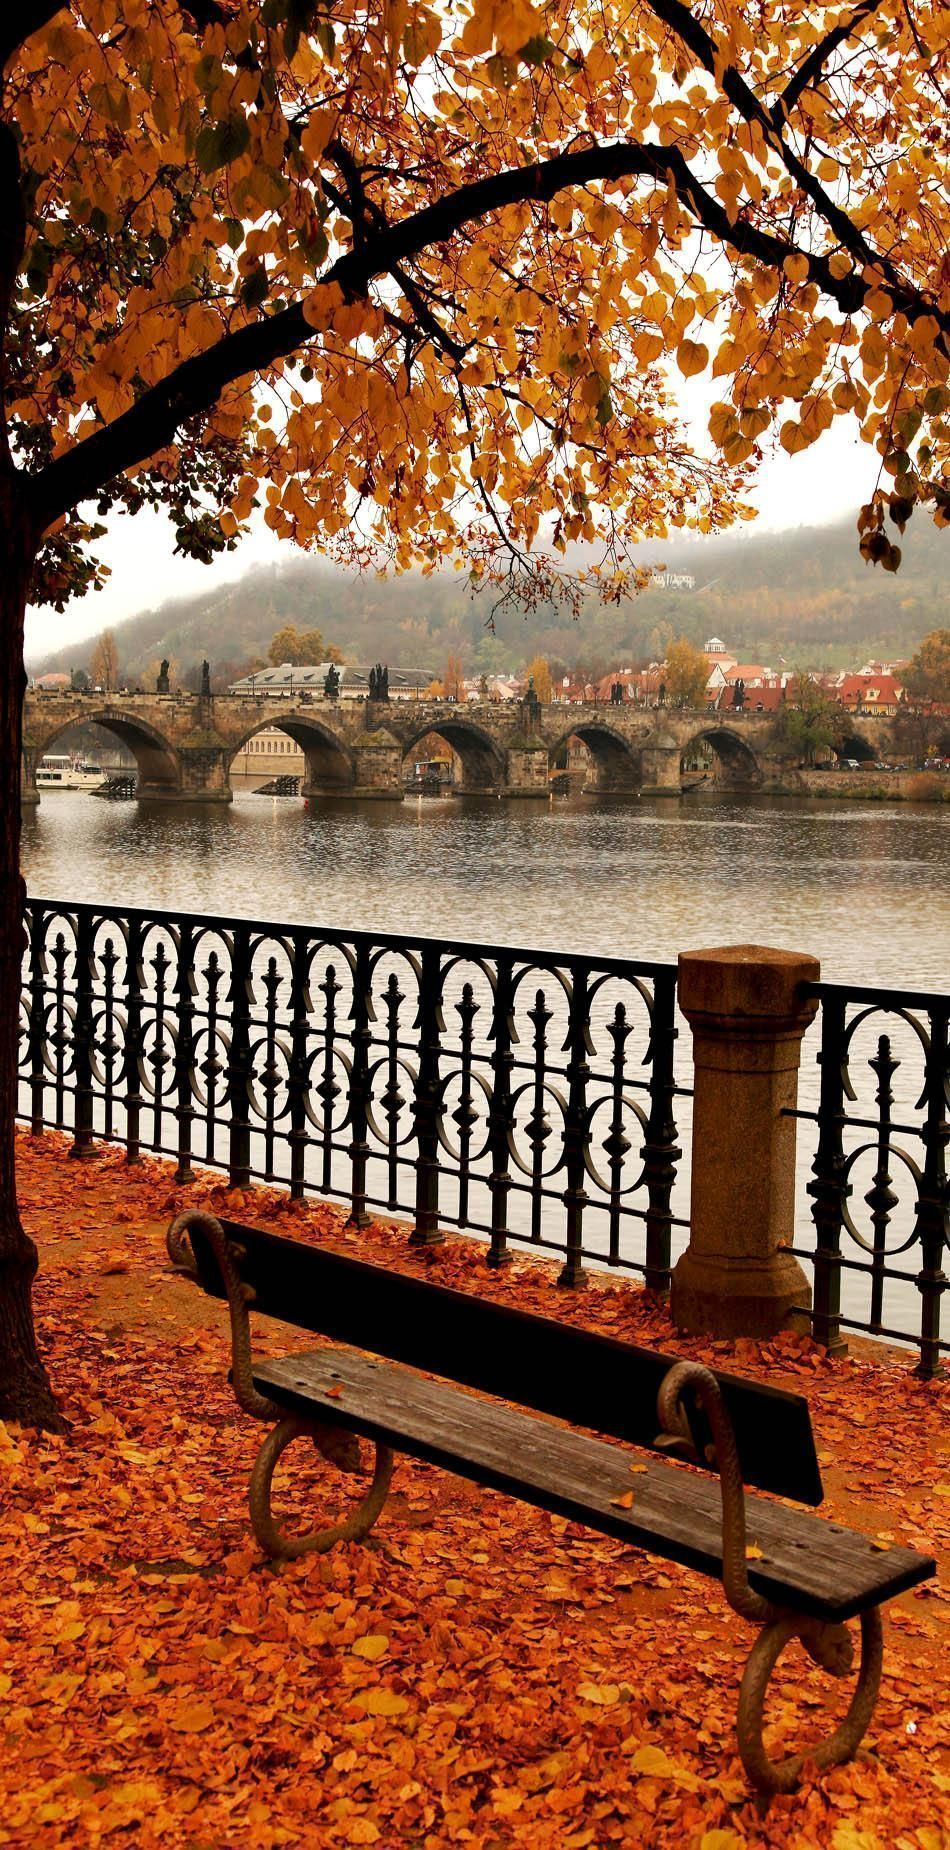 22 Reasons why Czech Republic must be in the TOP of your Bucket List #autumnseason Famous Charles Bridge in Autumn Melancholy, Prague, Czech Republic #landscapepics